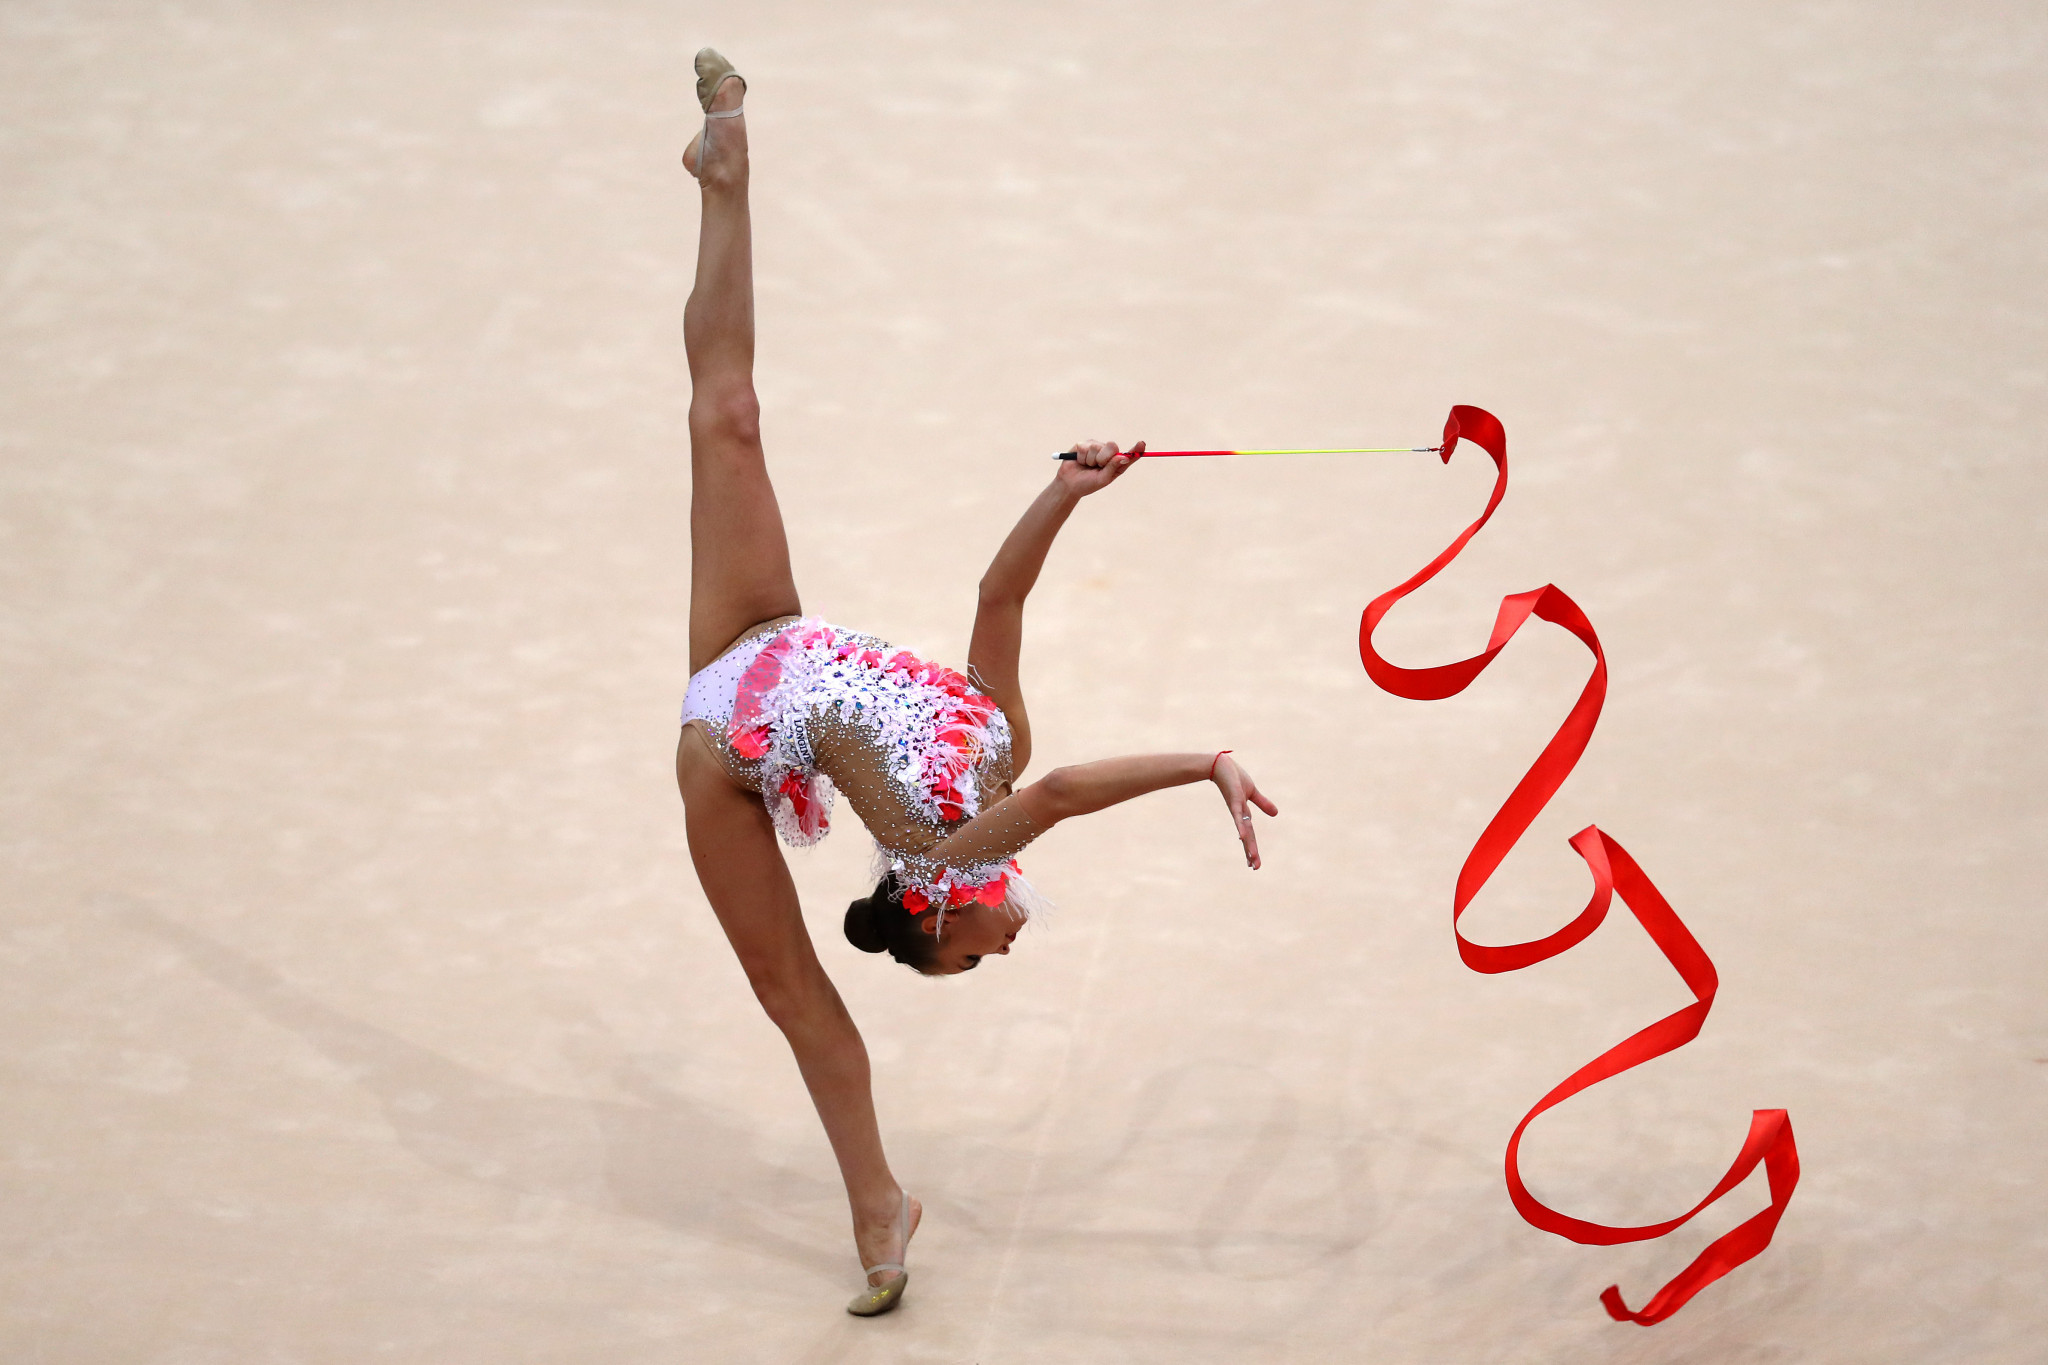 Tokyo 2020 places on offer at FIG Rhythmic Gymnastics World Championships in Baku